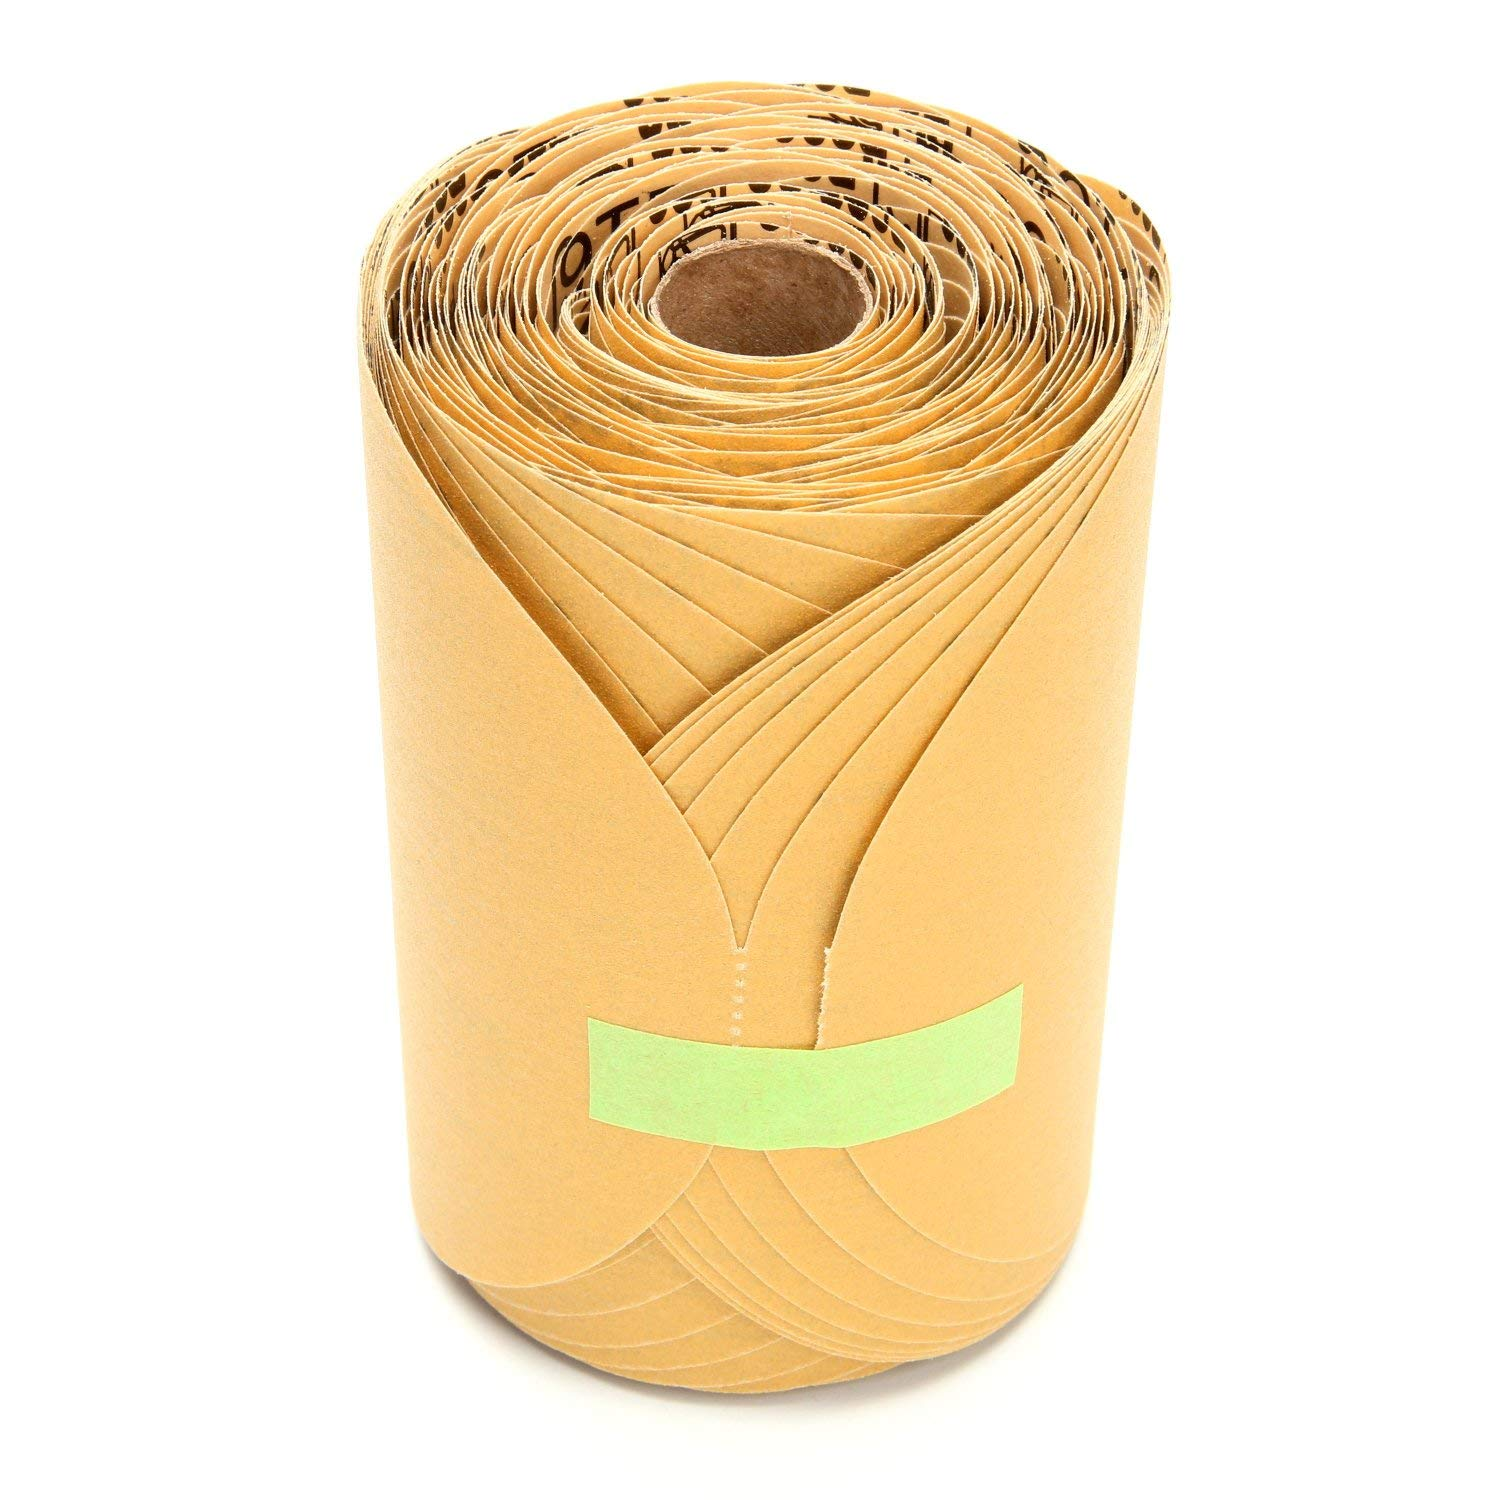 3M Stikit Gold Paper Disc Roll 216U, P220 A-weight, 6 in x NH, Die 600Z 71T2BMrjfNmL._SL1500_